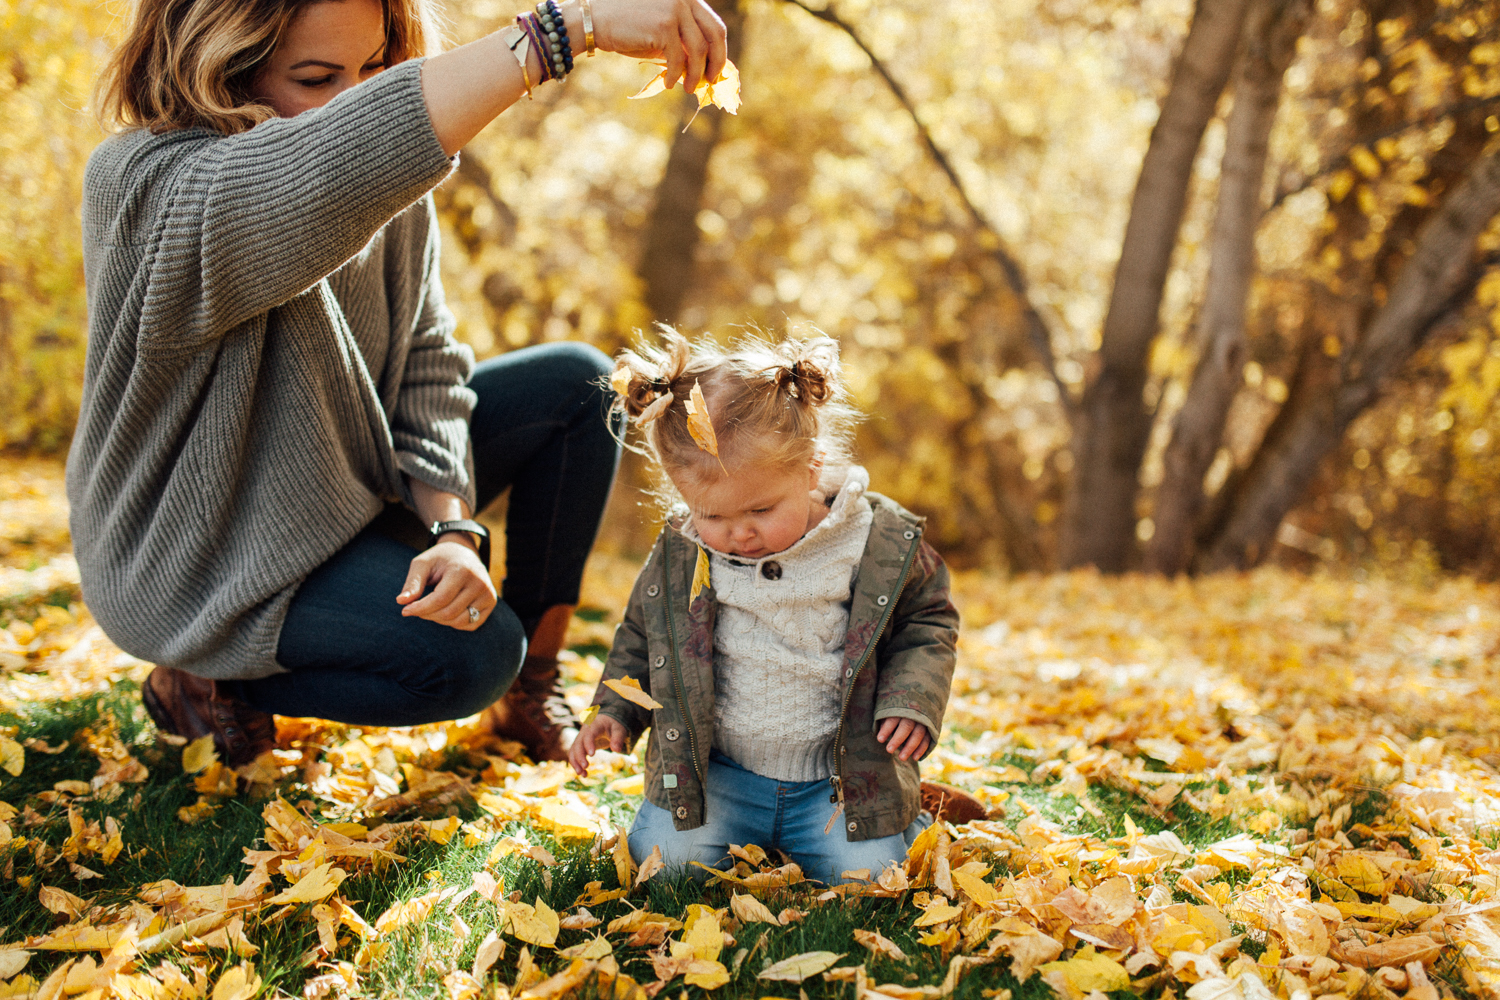 natural-and-candid-photo-of-mother-and-daughter-playing-in-fall-leaves-at-park-in-slc-ut